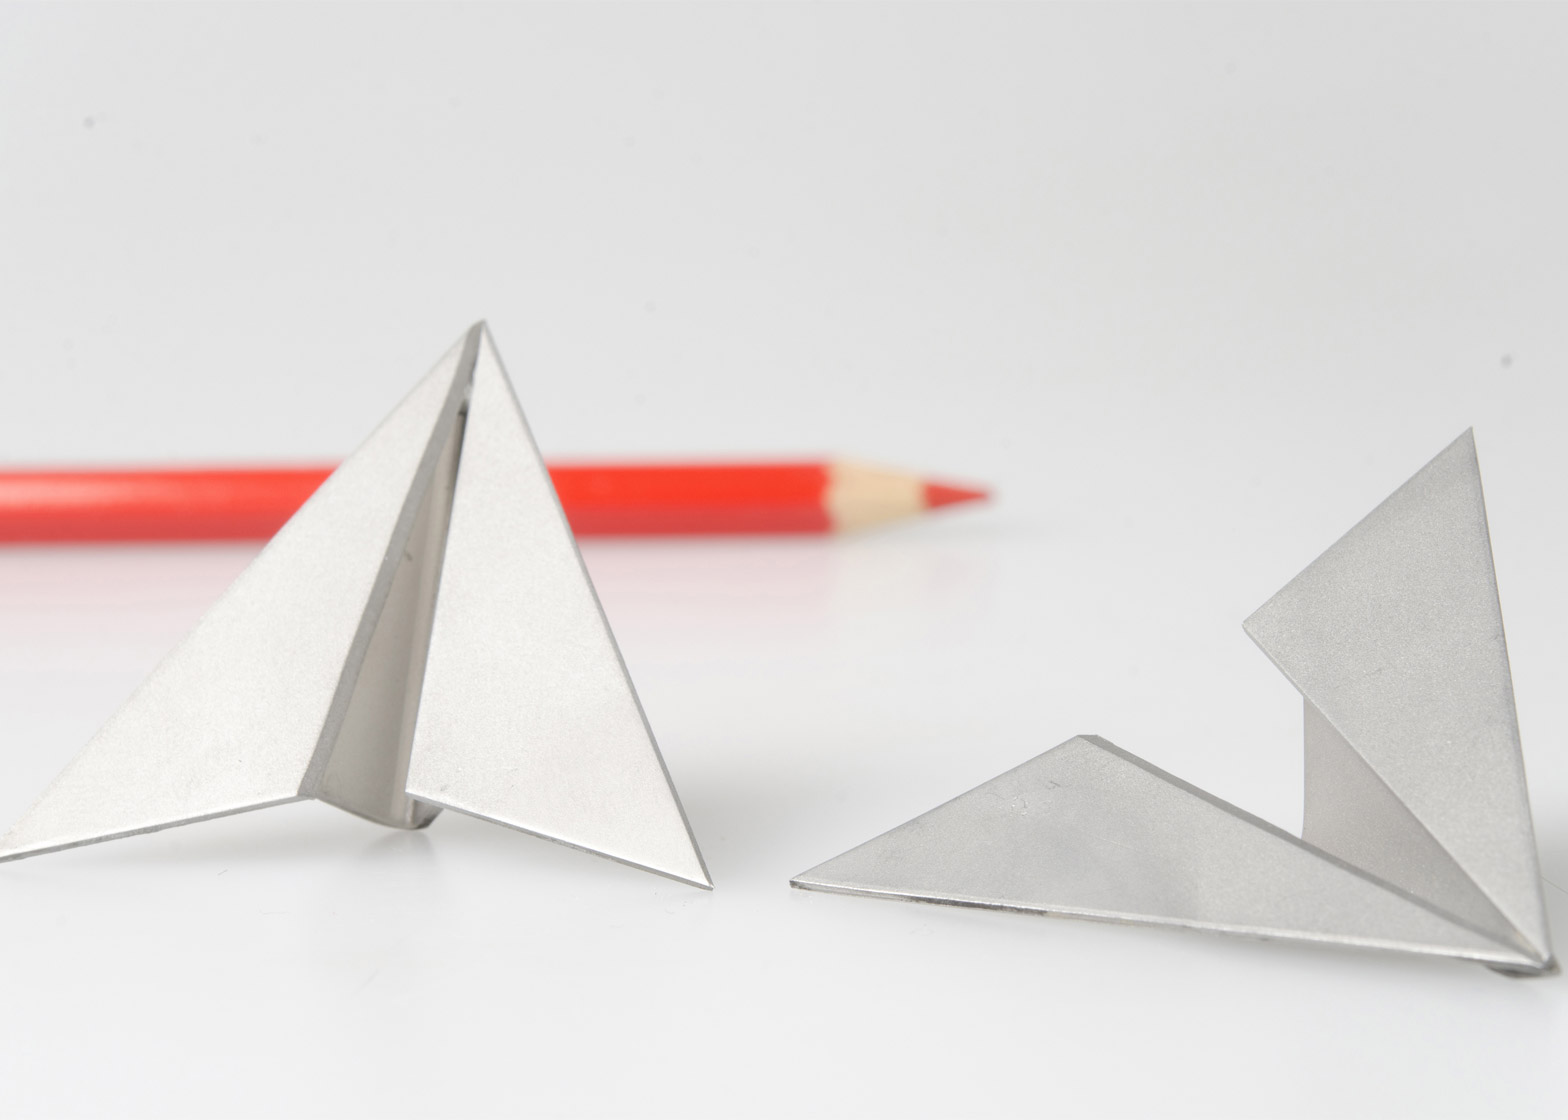 innovative-pencil-sharpeners-hisheji (4)